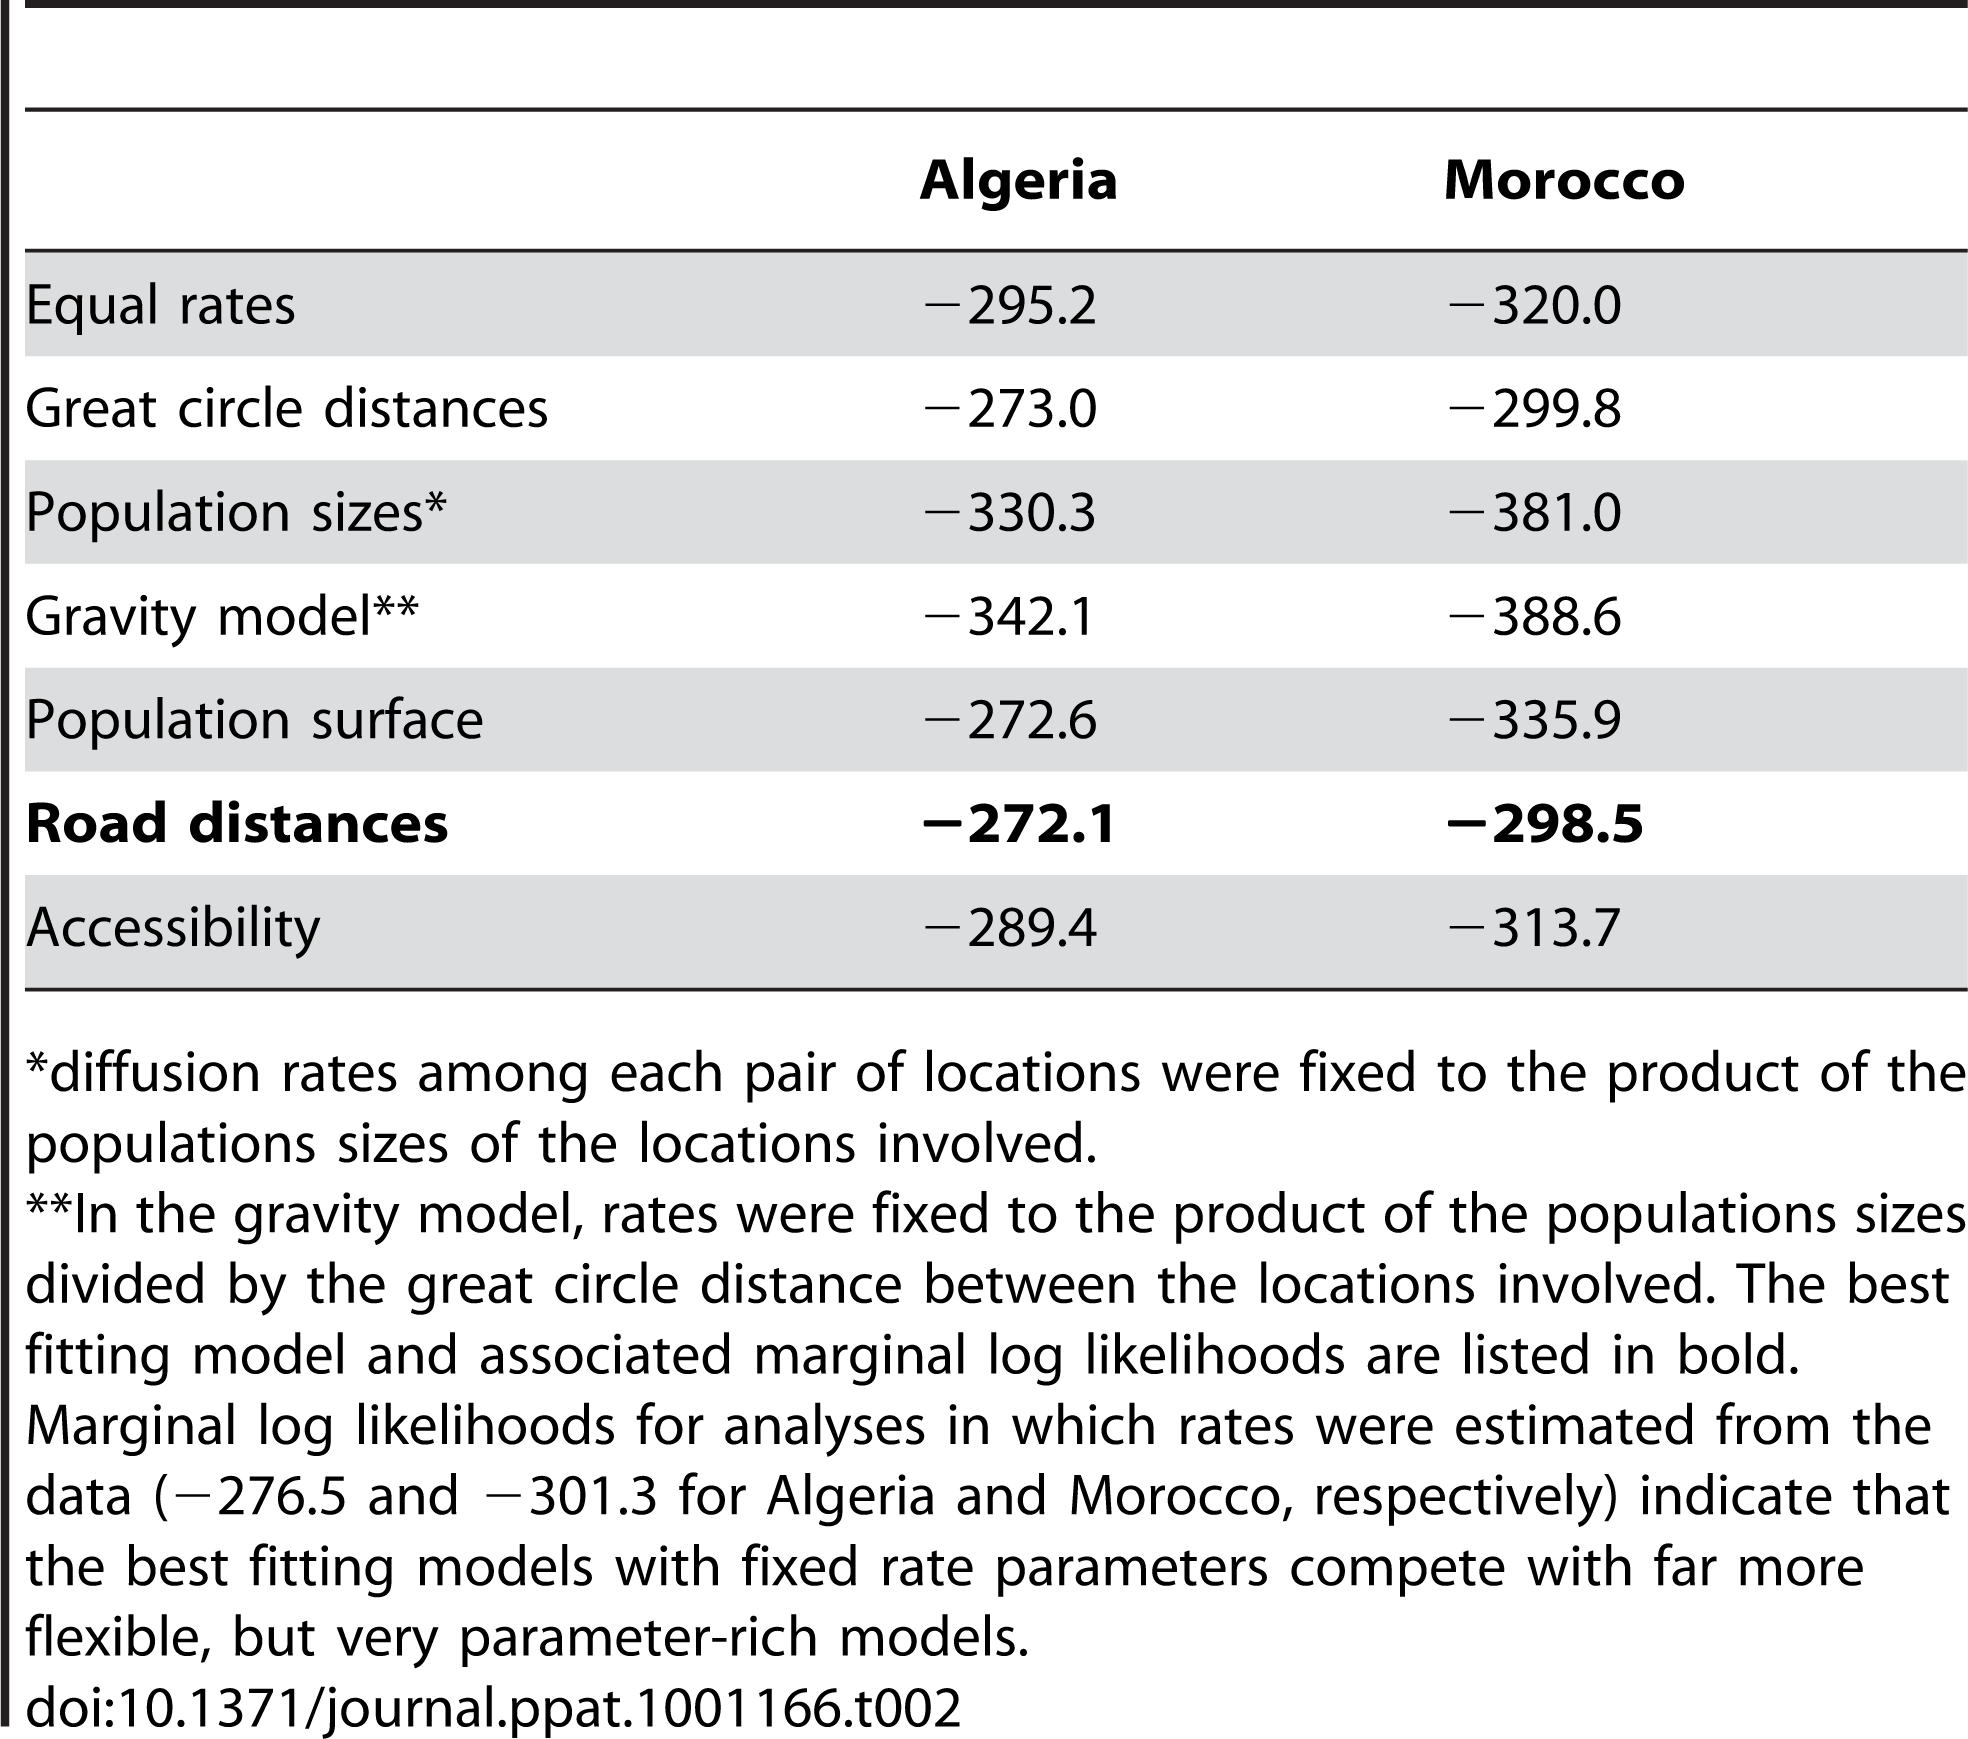 Marginal (log) likelihood estimates for the fit of different phylogeographic diffusion predictors in Algeria and Morocco.